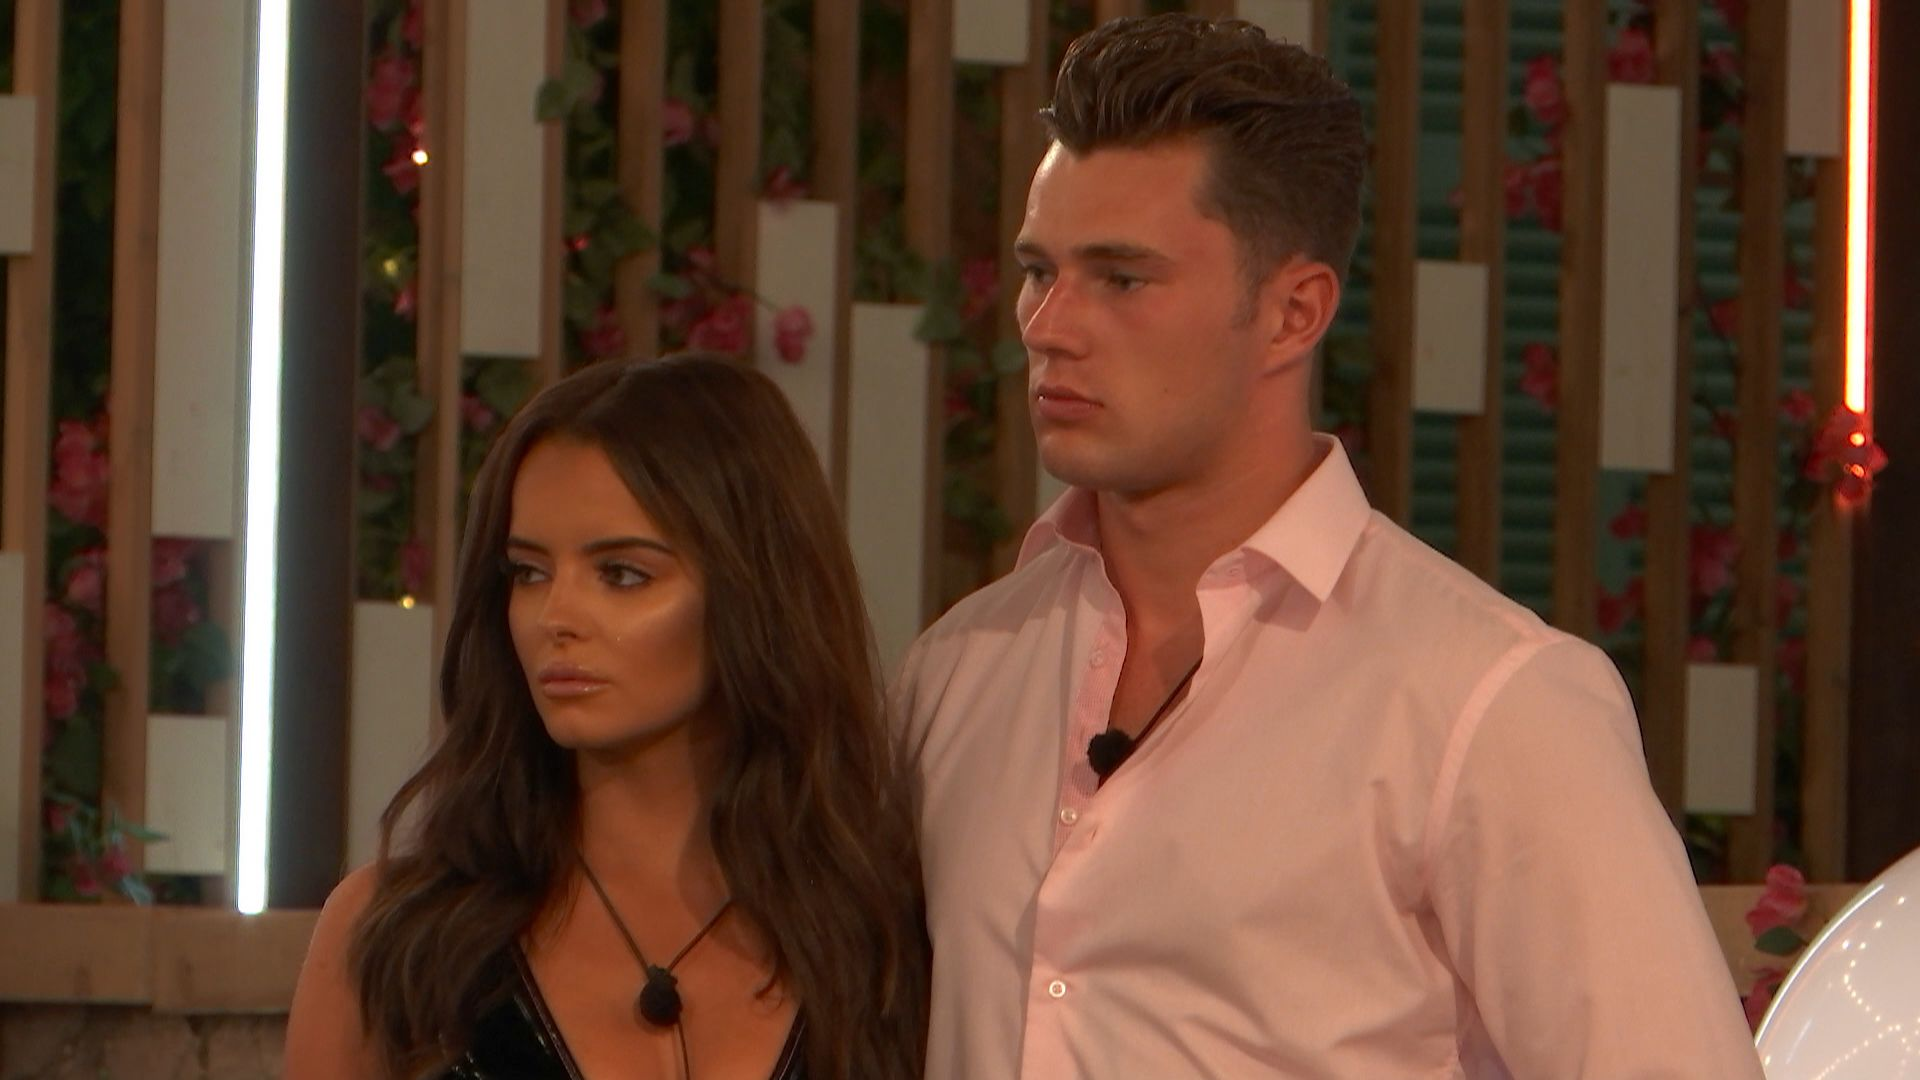 Love Island's Maura Higgins reveals Curtis Pritchard's sweet gestures that were never shown